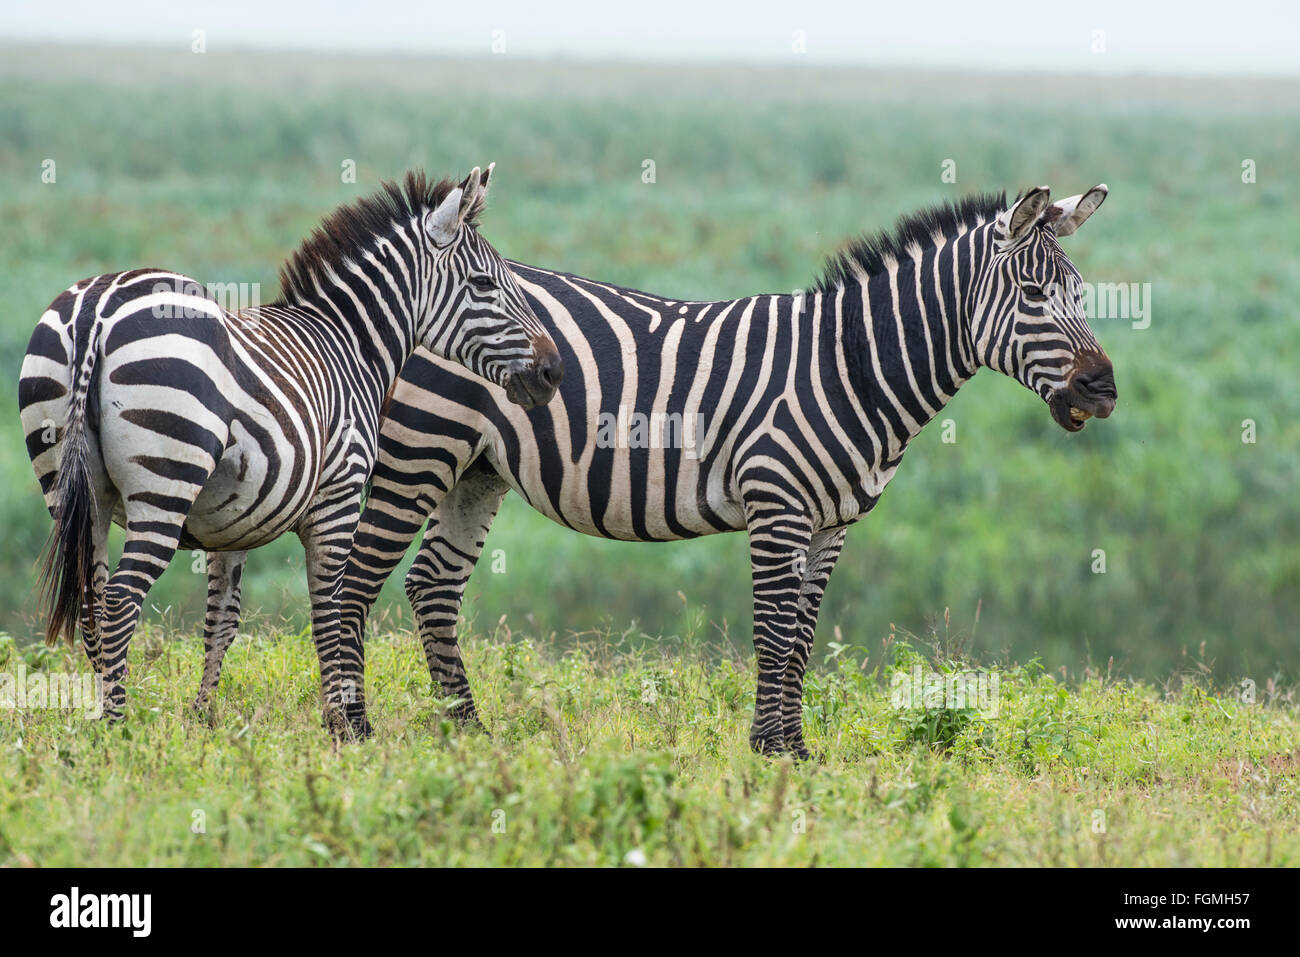 Plains or Burchell's zebra (Equus quagga), Ngorongoro Crater, Tanzania. The animal on the right is calling to - Stock Image